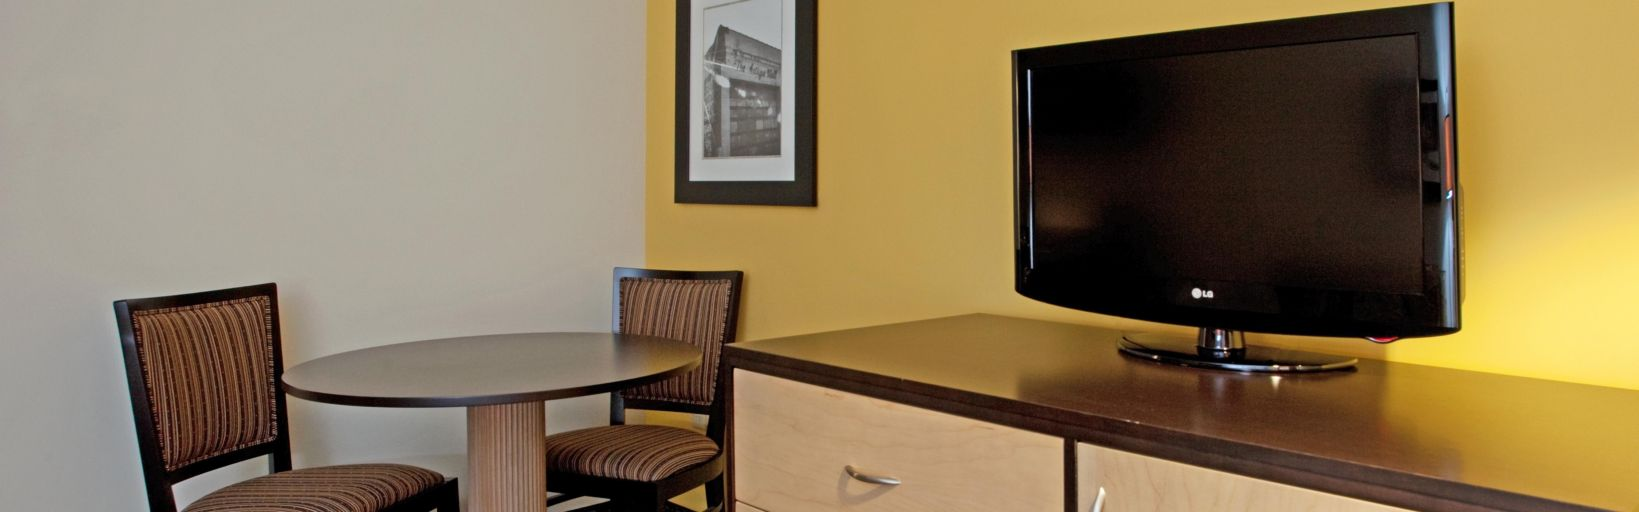 Americas Best Value Inn West Columbia Holiday Inn Hotel Suites Columbia Airport Hotel By Ihg